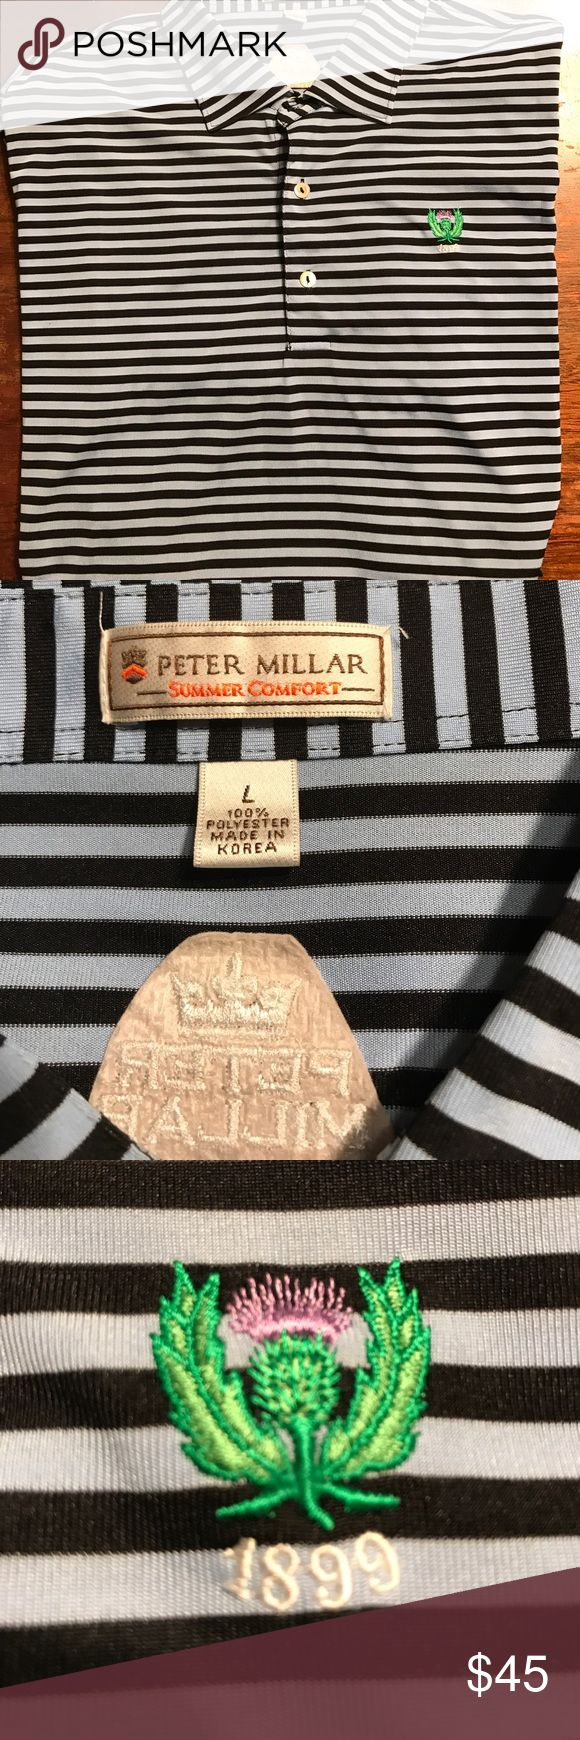 Peter Millar Summer Collection Mens Lrg Polo shirt Gently preowned 100%  Polyester great for a day on the golf course garden city golf club 1899 Logo. Peter Millar Shirts Polos